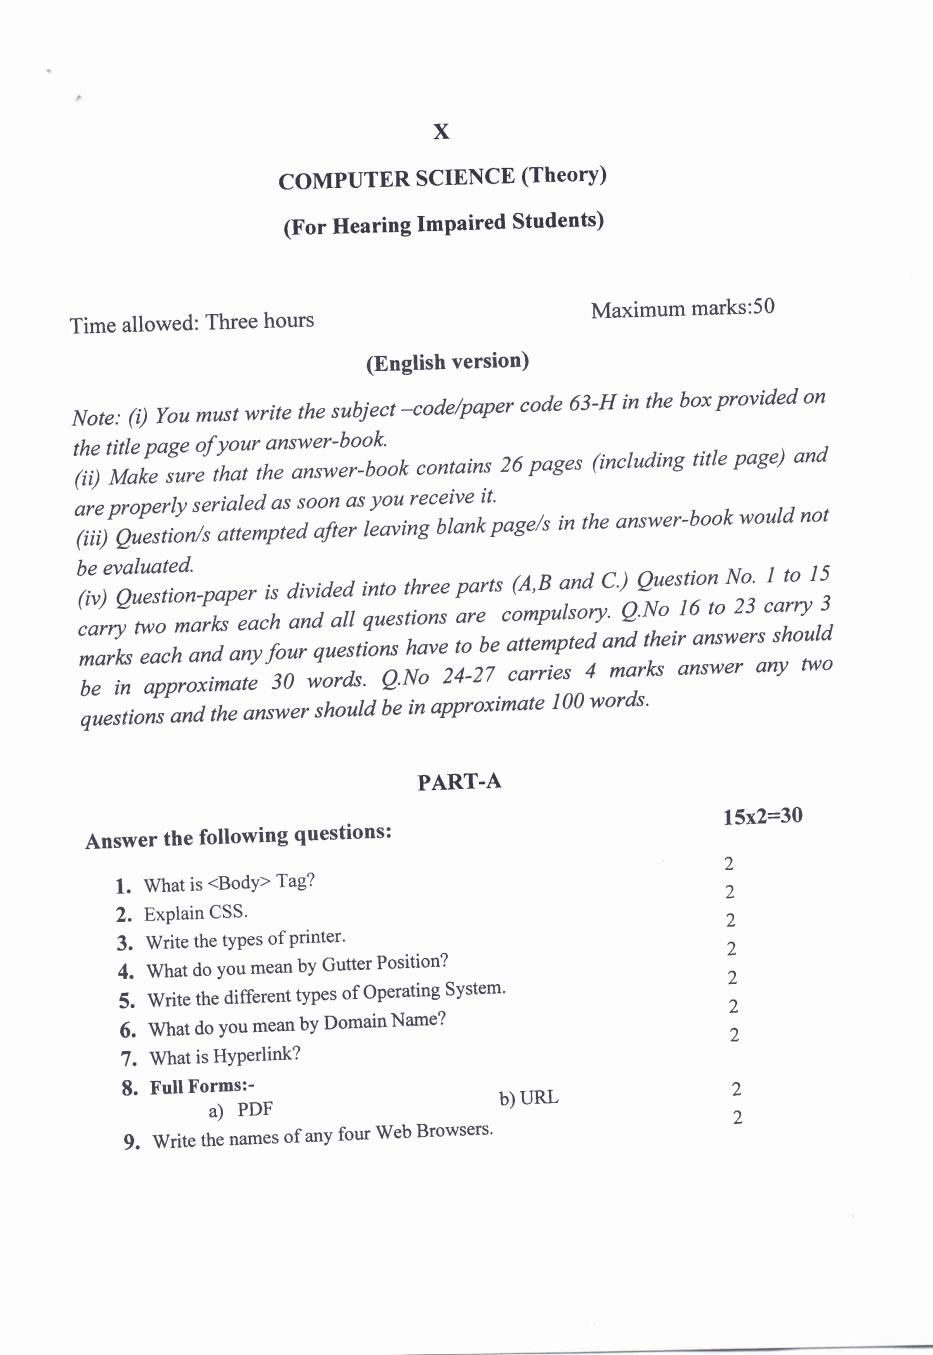 PSEB Sample Paper for Class 10 – Computer Science